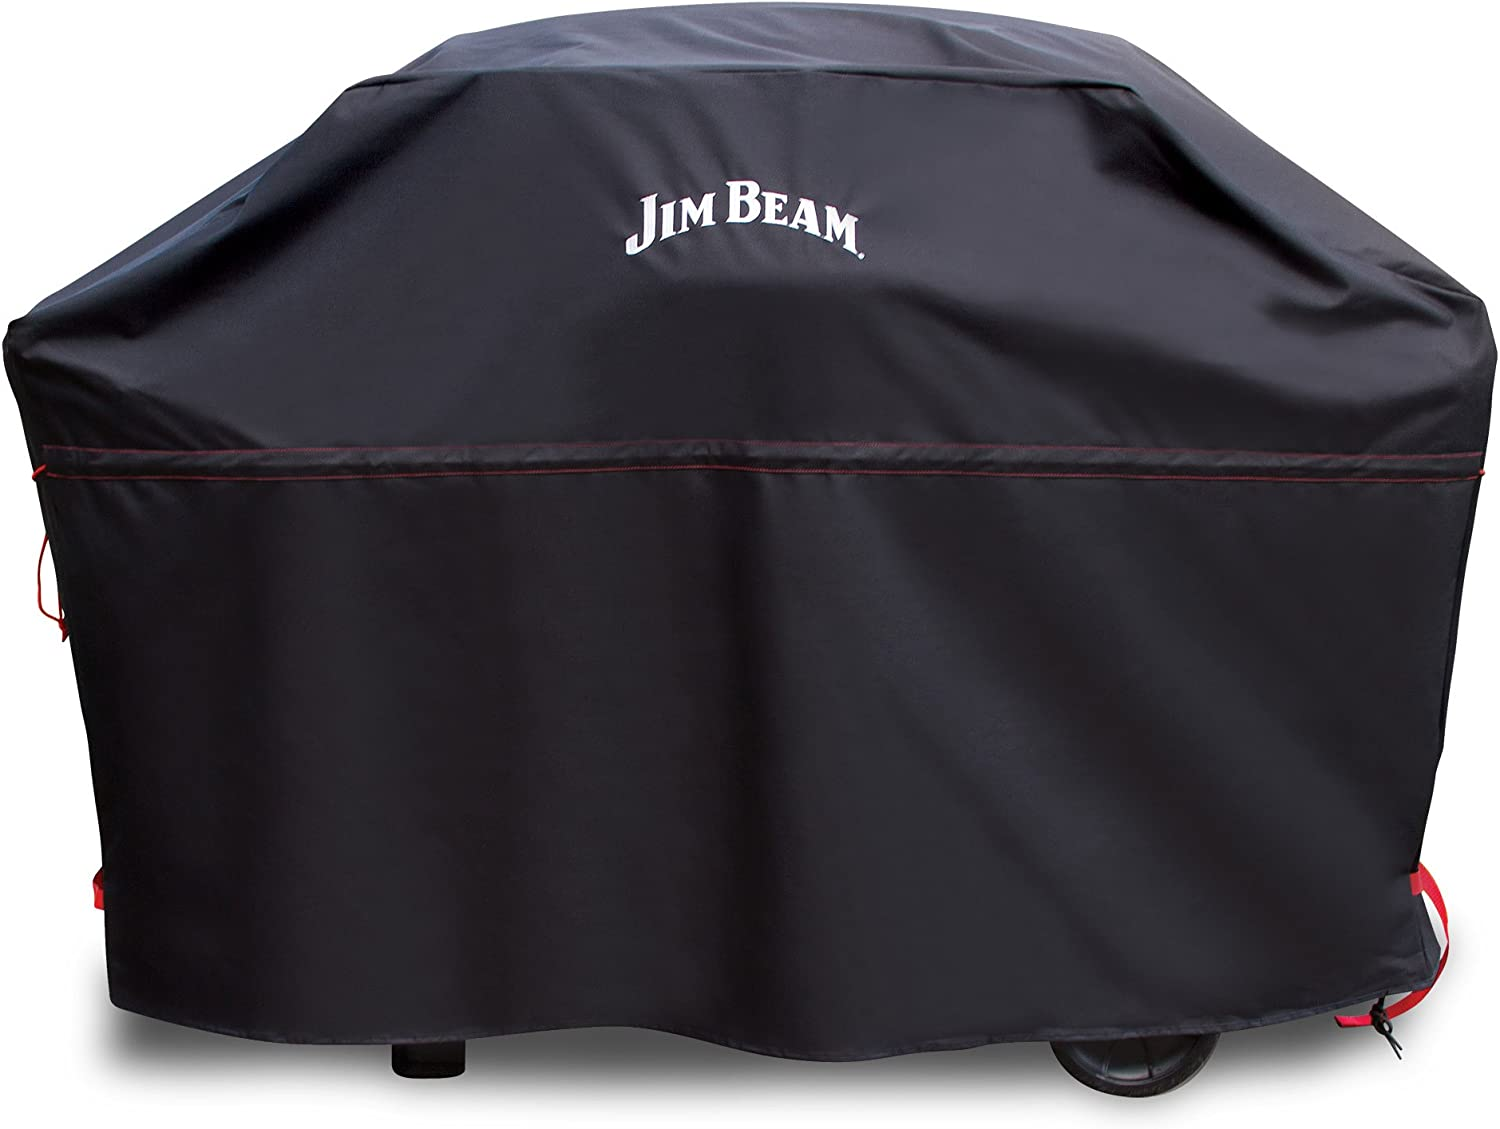 Jim Beam Grill Cover, 70Inch